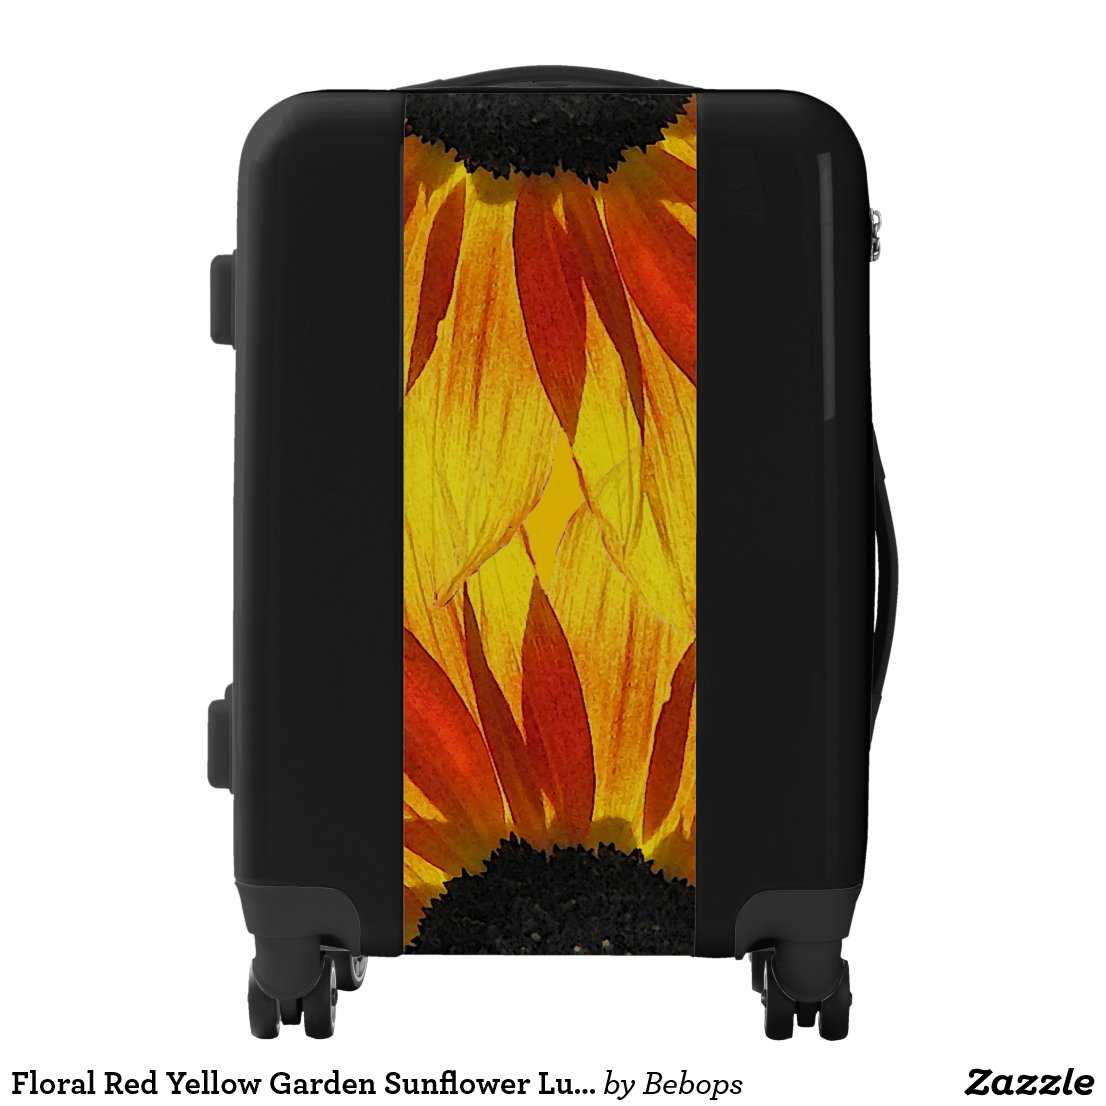 Floral Red Yellow Garden Sunflower Luggage